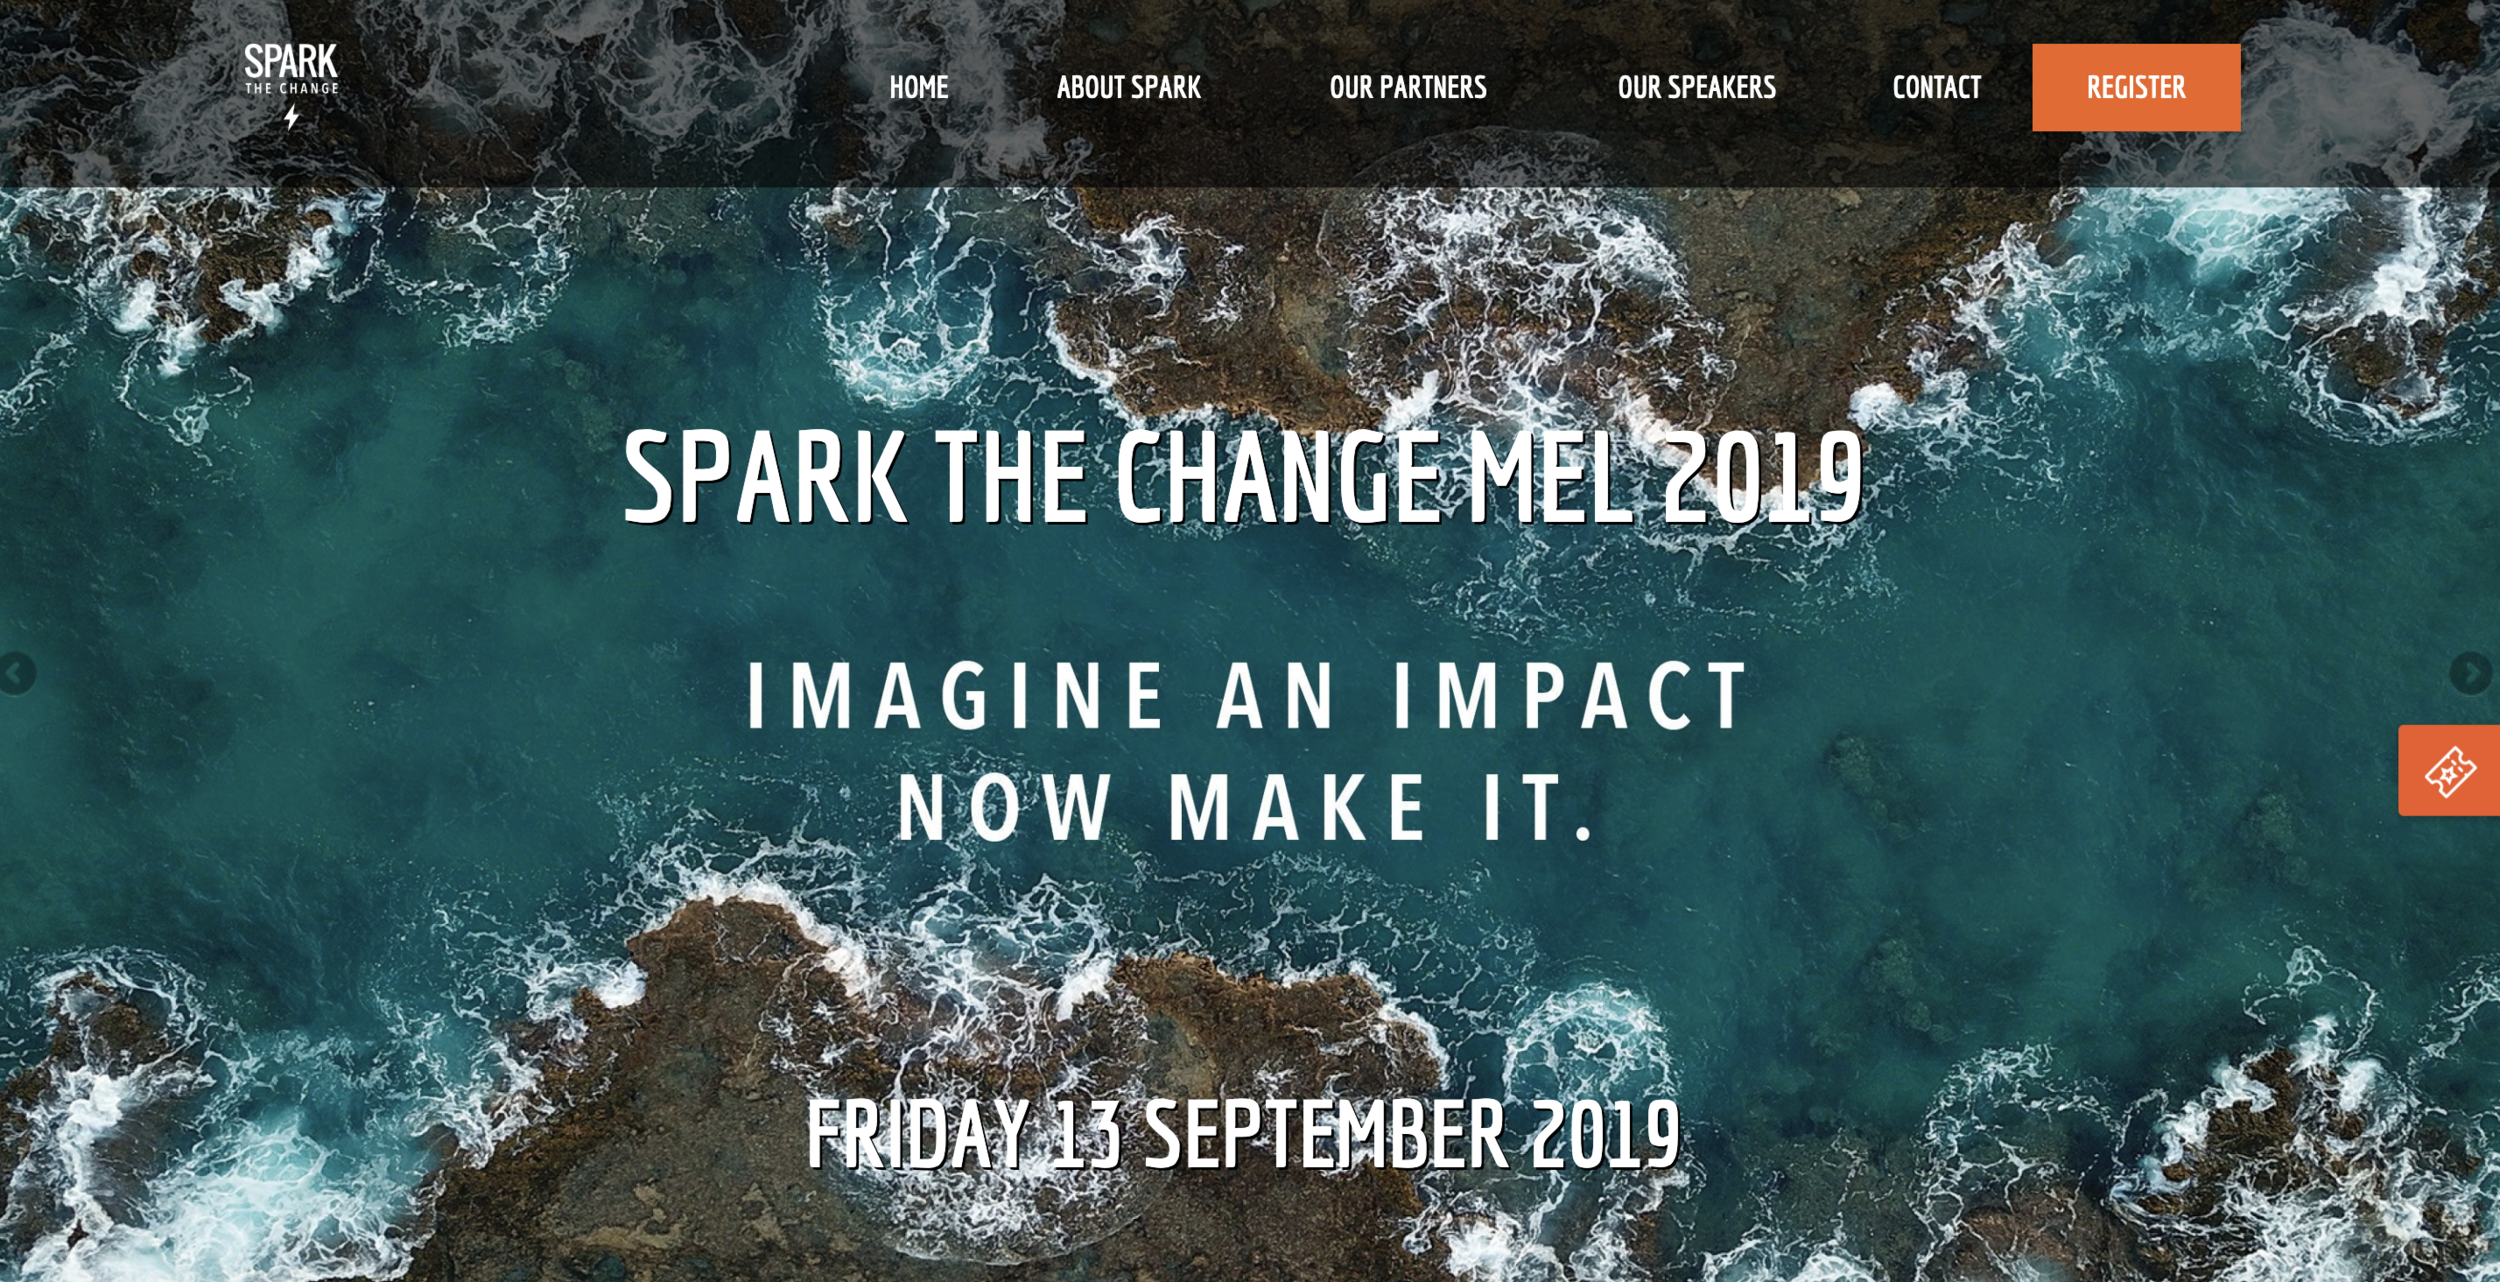 Spark the change pic.png